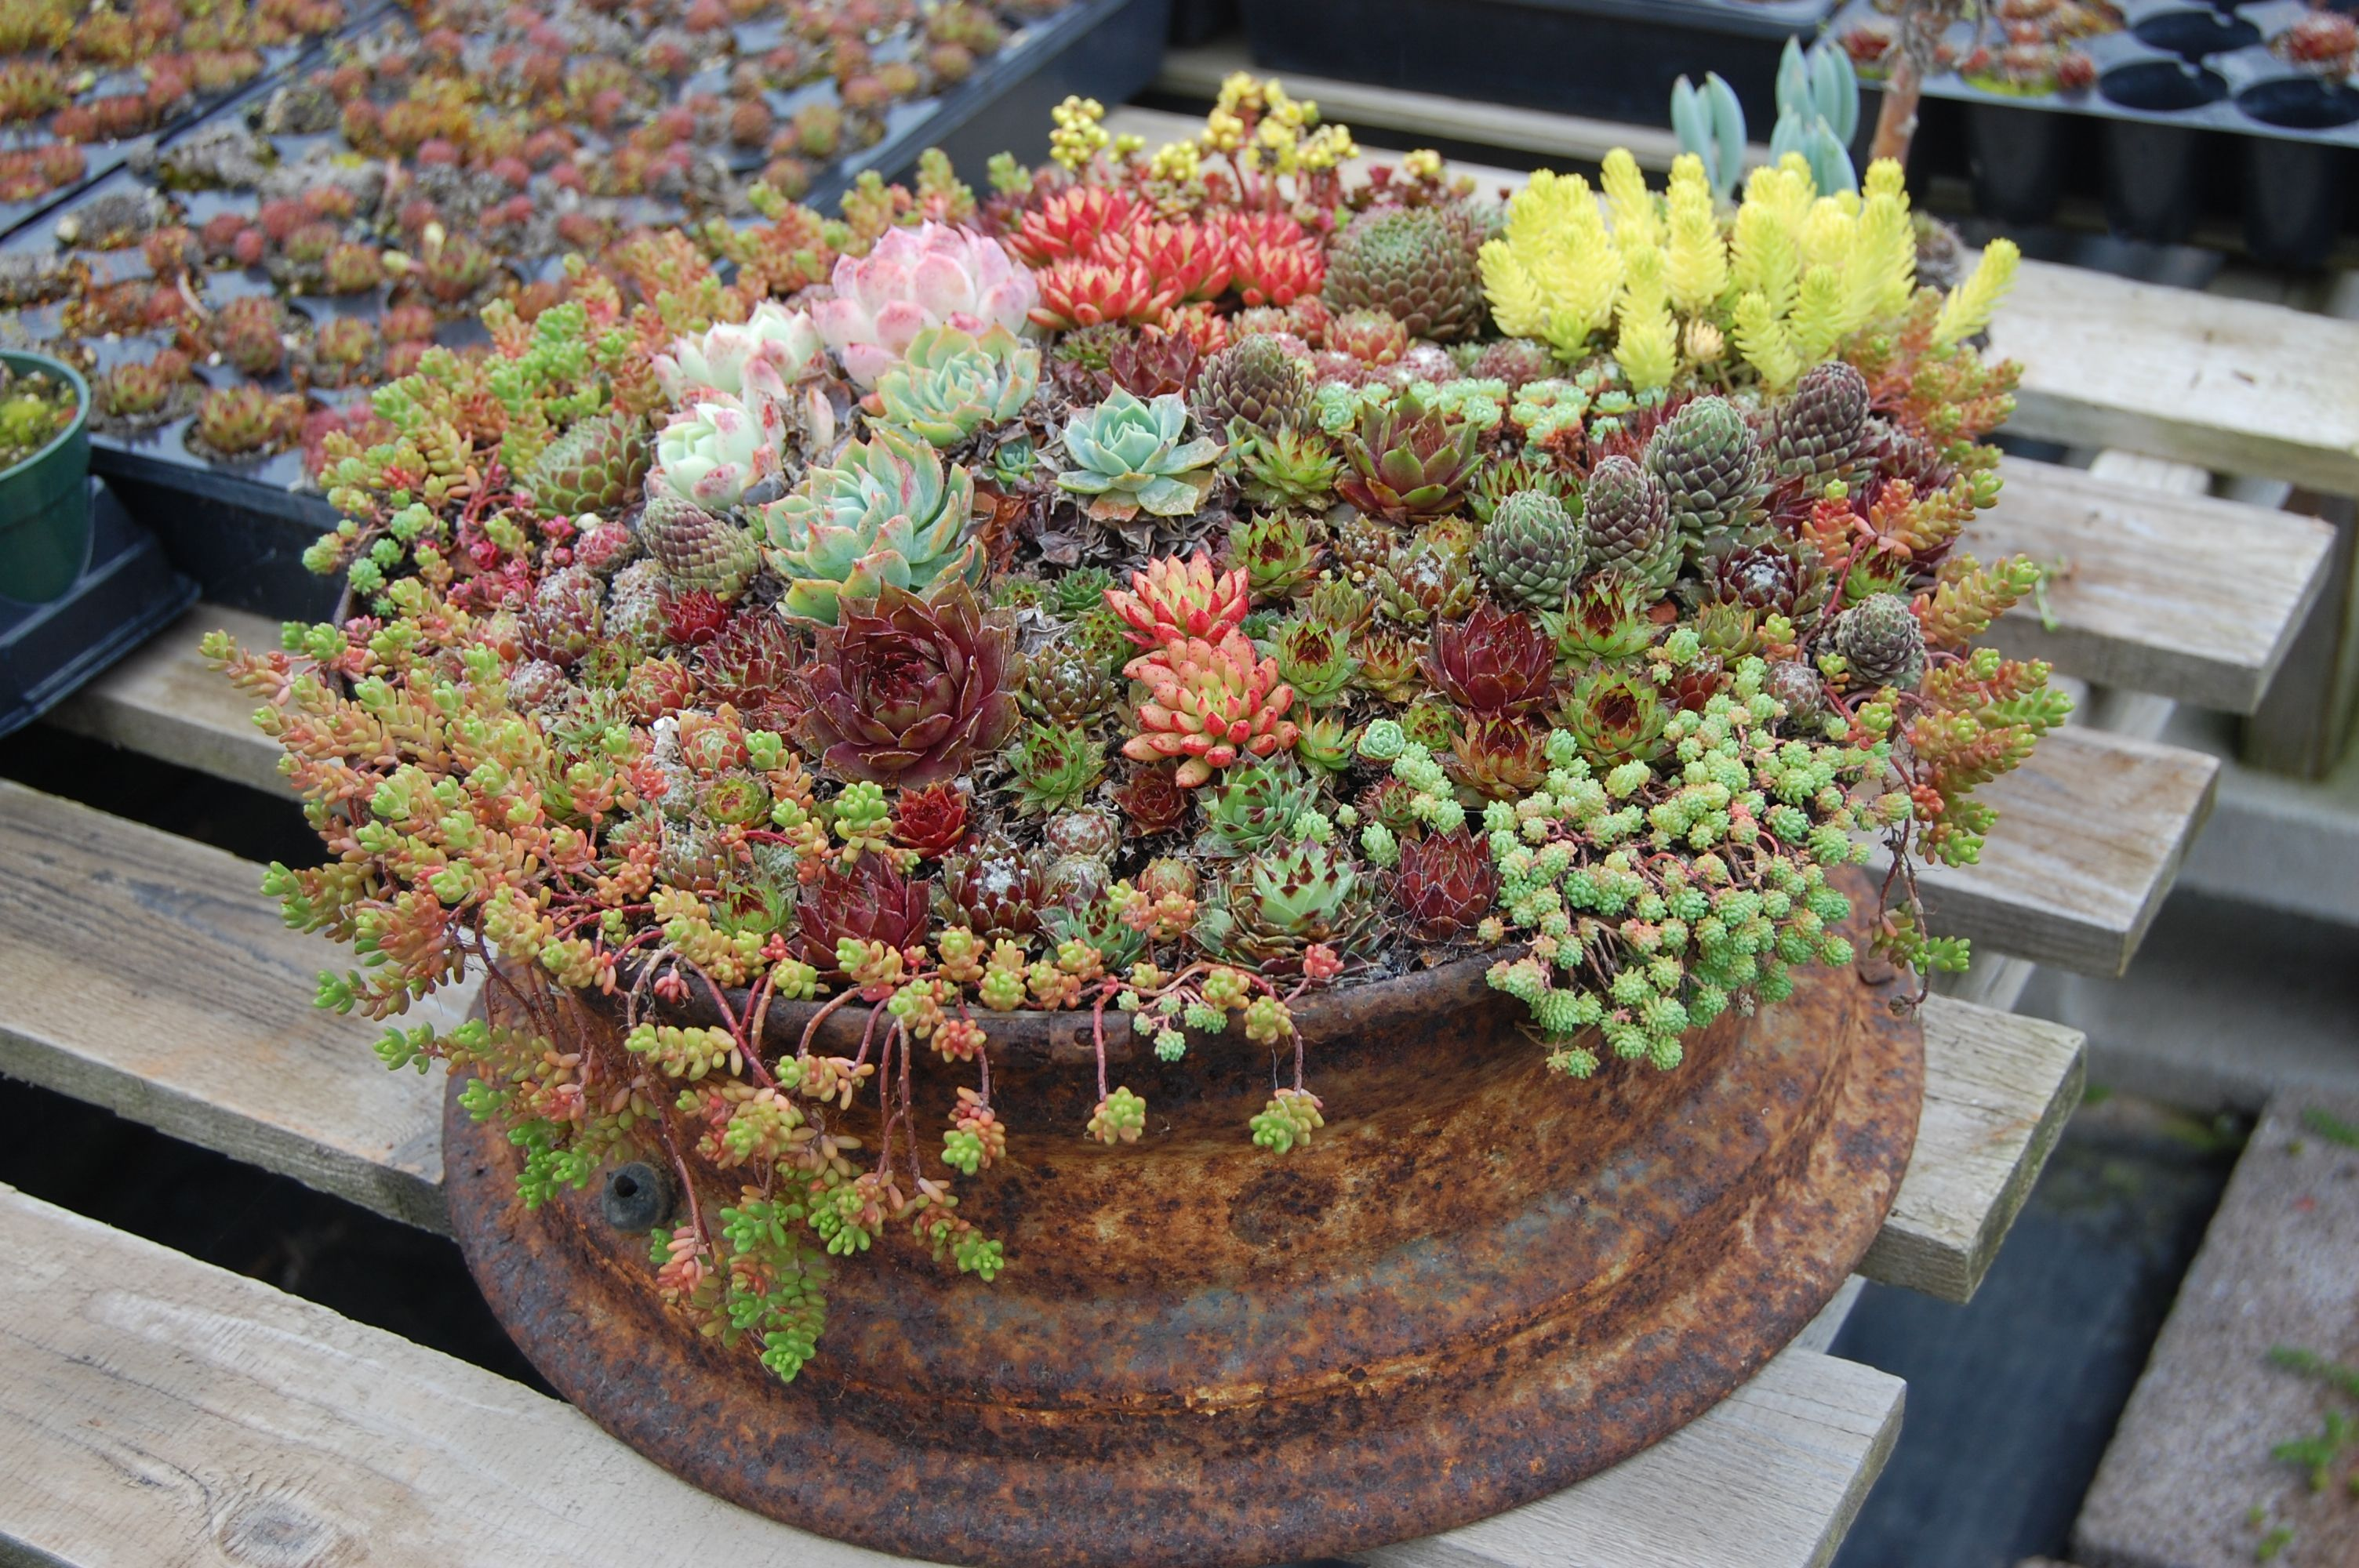 This old rusty car rim has a nice variety of Sedum, and Sempervivum (Hen and Chicks). <3 this!